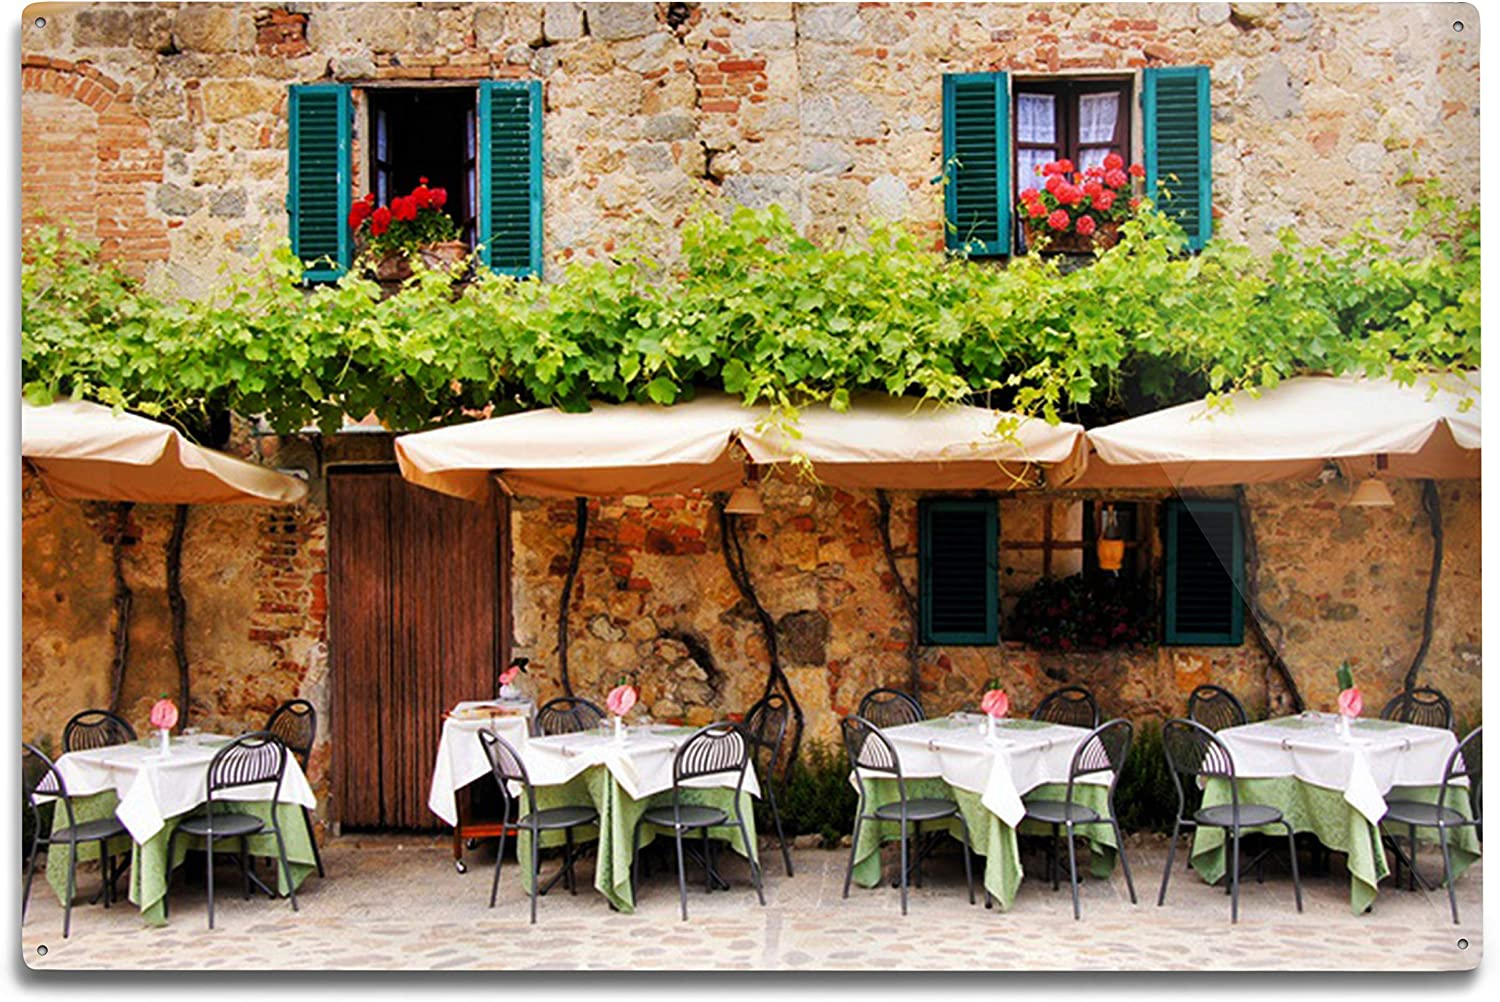 Lantern Press Mail order Tuscany Italy Cafe Tables Max 75% OFF Old Chairs Outside and